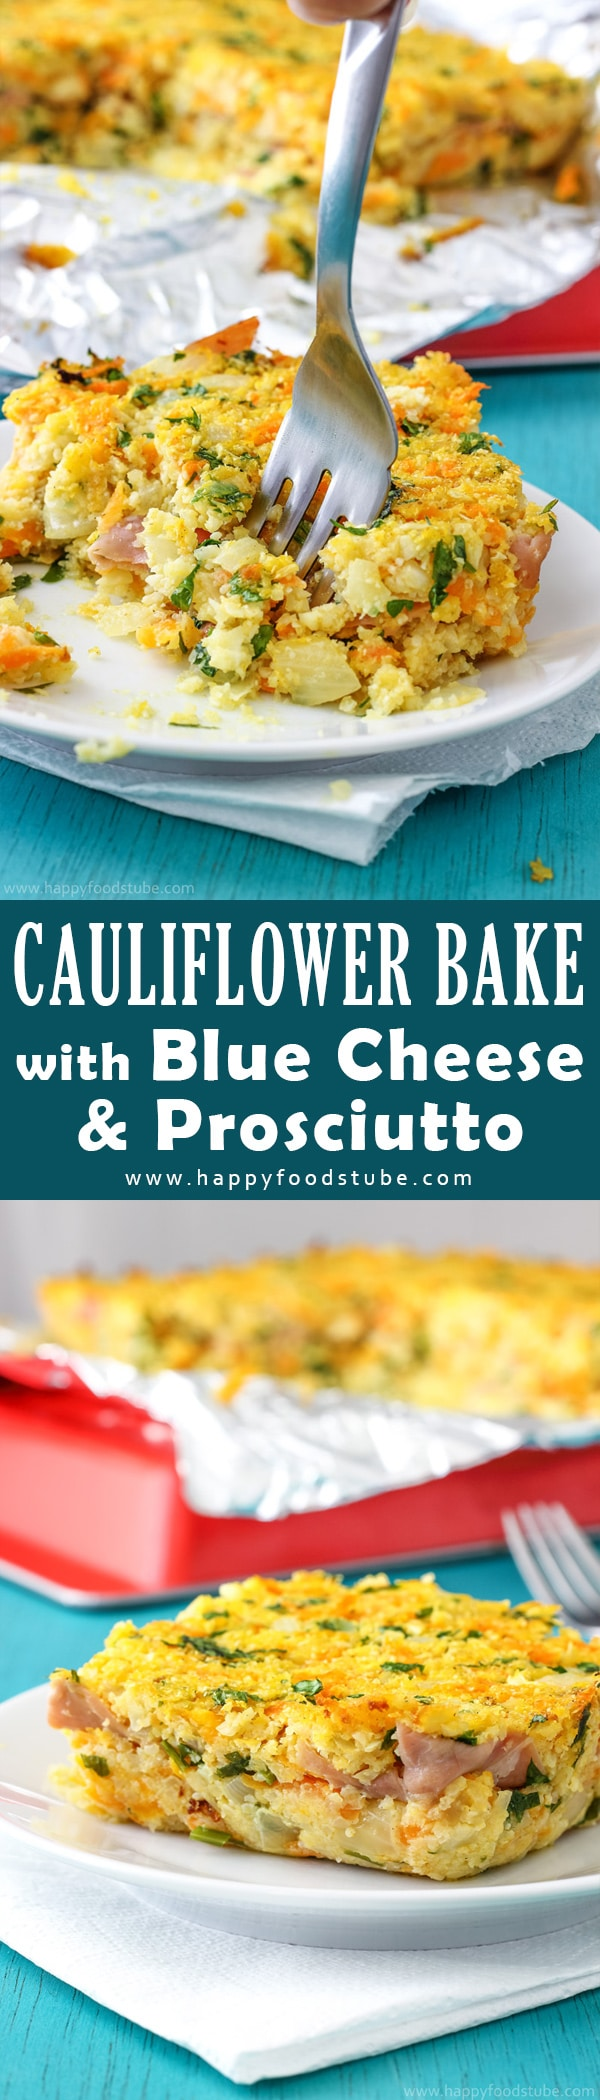 This cauliflower bake with blue cheese and prosciutto is a great appetizer as well as side. Turn ordinary vegetables into something extraordinary. Easy family meal recipe